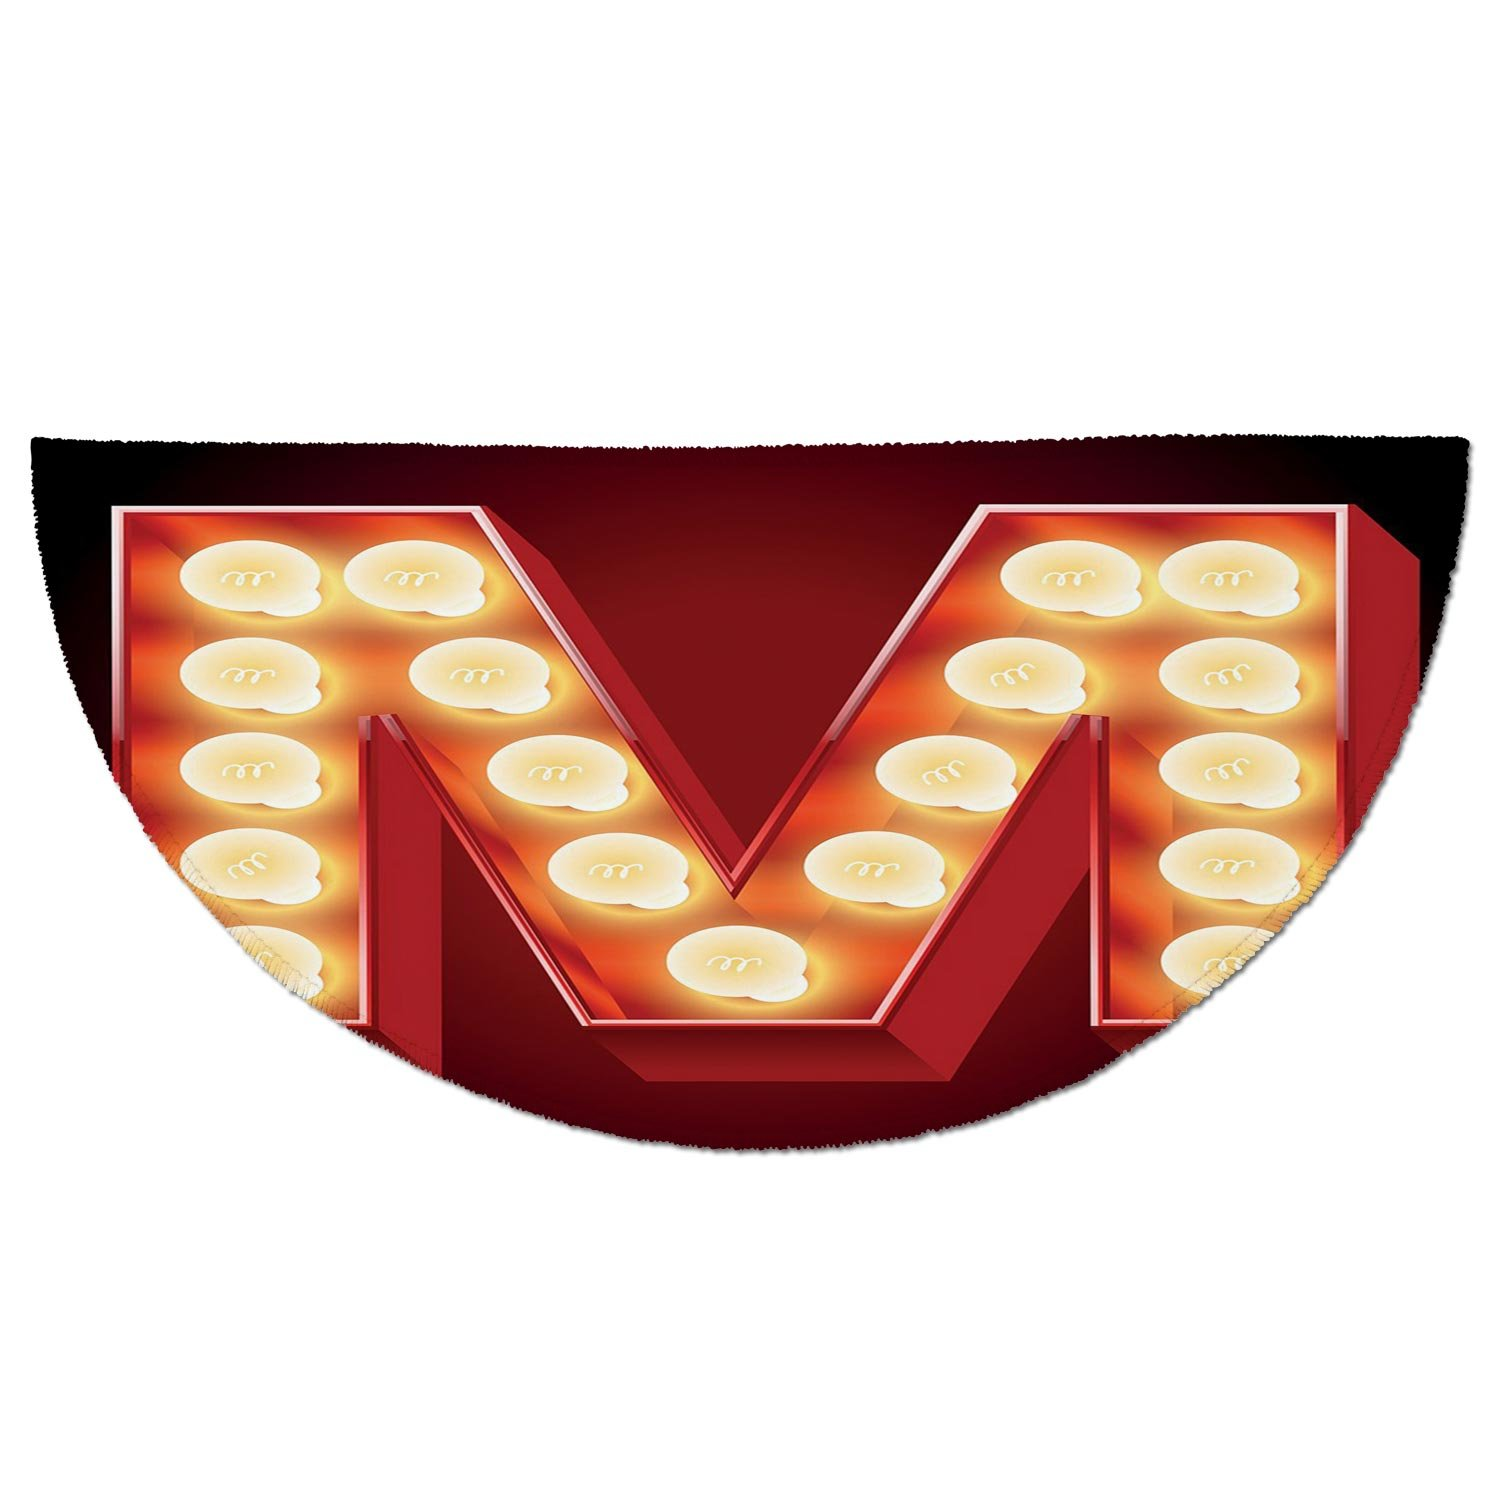 ... M,Vintage Alphabet Collection of Old Movie Theaters Casinos Retro Type Decorative,Vermilion Yellow Black,Garage Entry Carpet Decor for House Patio Gr